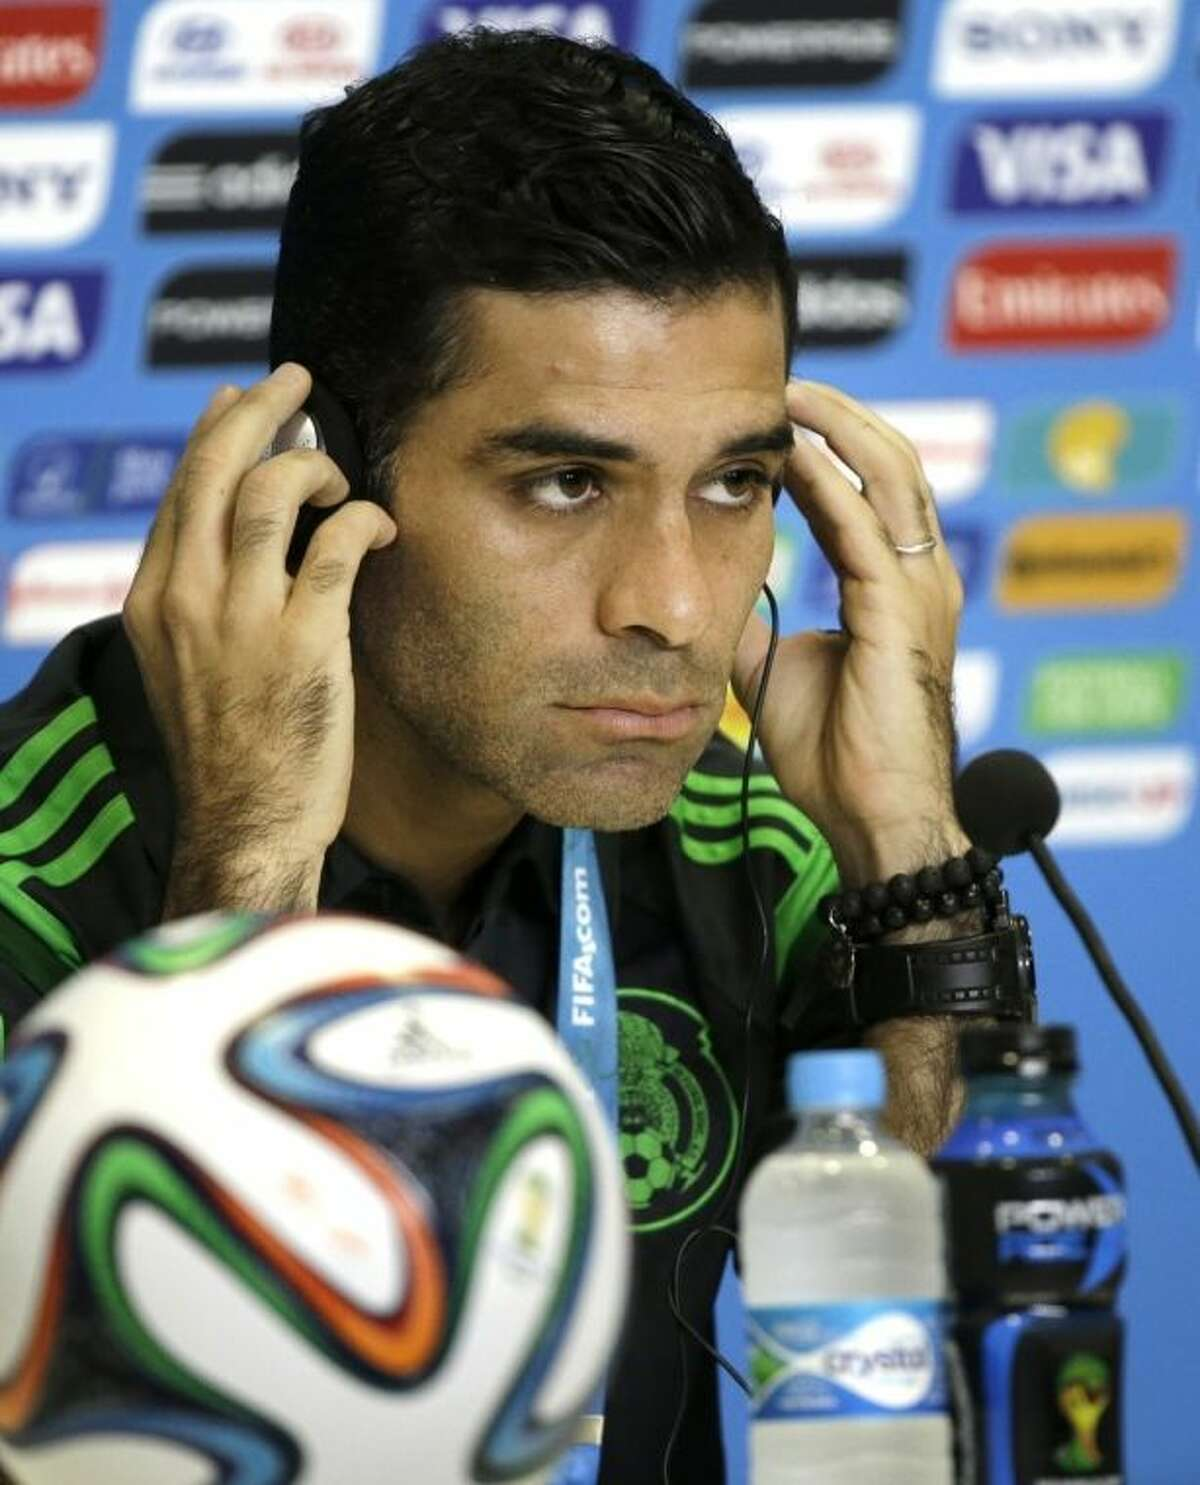 Mexico's soccer team captain Rafael Marquez attends a news conference before training for the World Cup in the Arena das Dunas in Natal, Brazil, Thursday, June 12, 2014. (AP Photo/Sergei Grits)